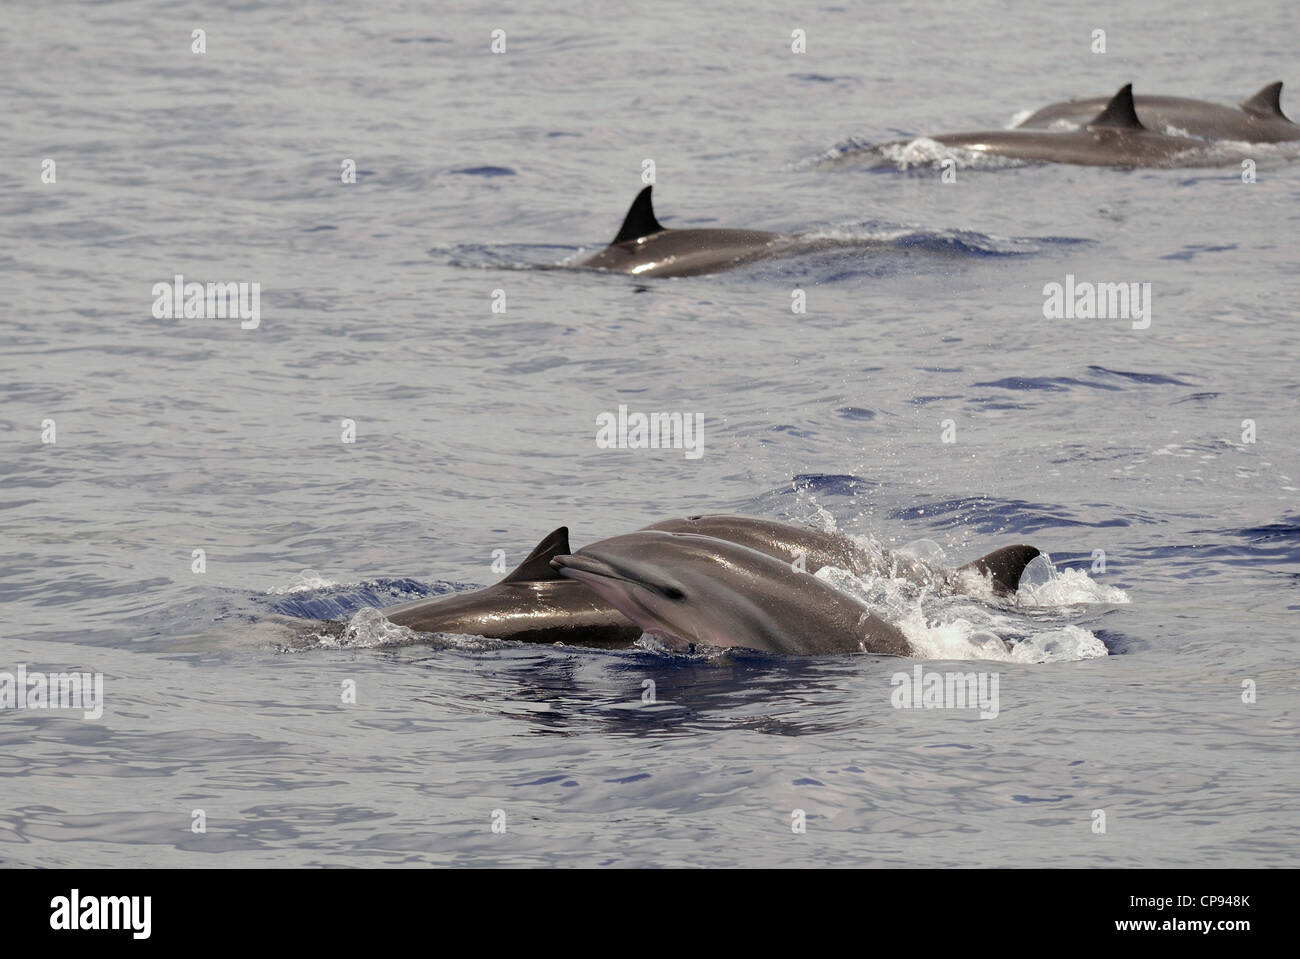 Fraser's Dolphin (Lagenodelphis hosei) or Sarawak Dolphin, group at surface, The Maldives - Stock Image